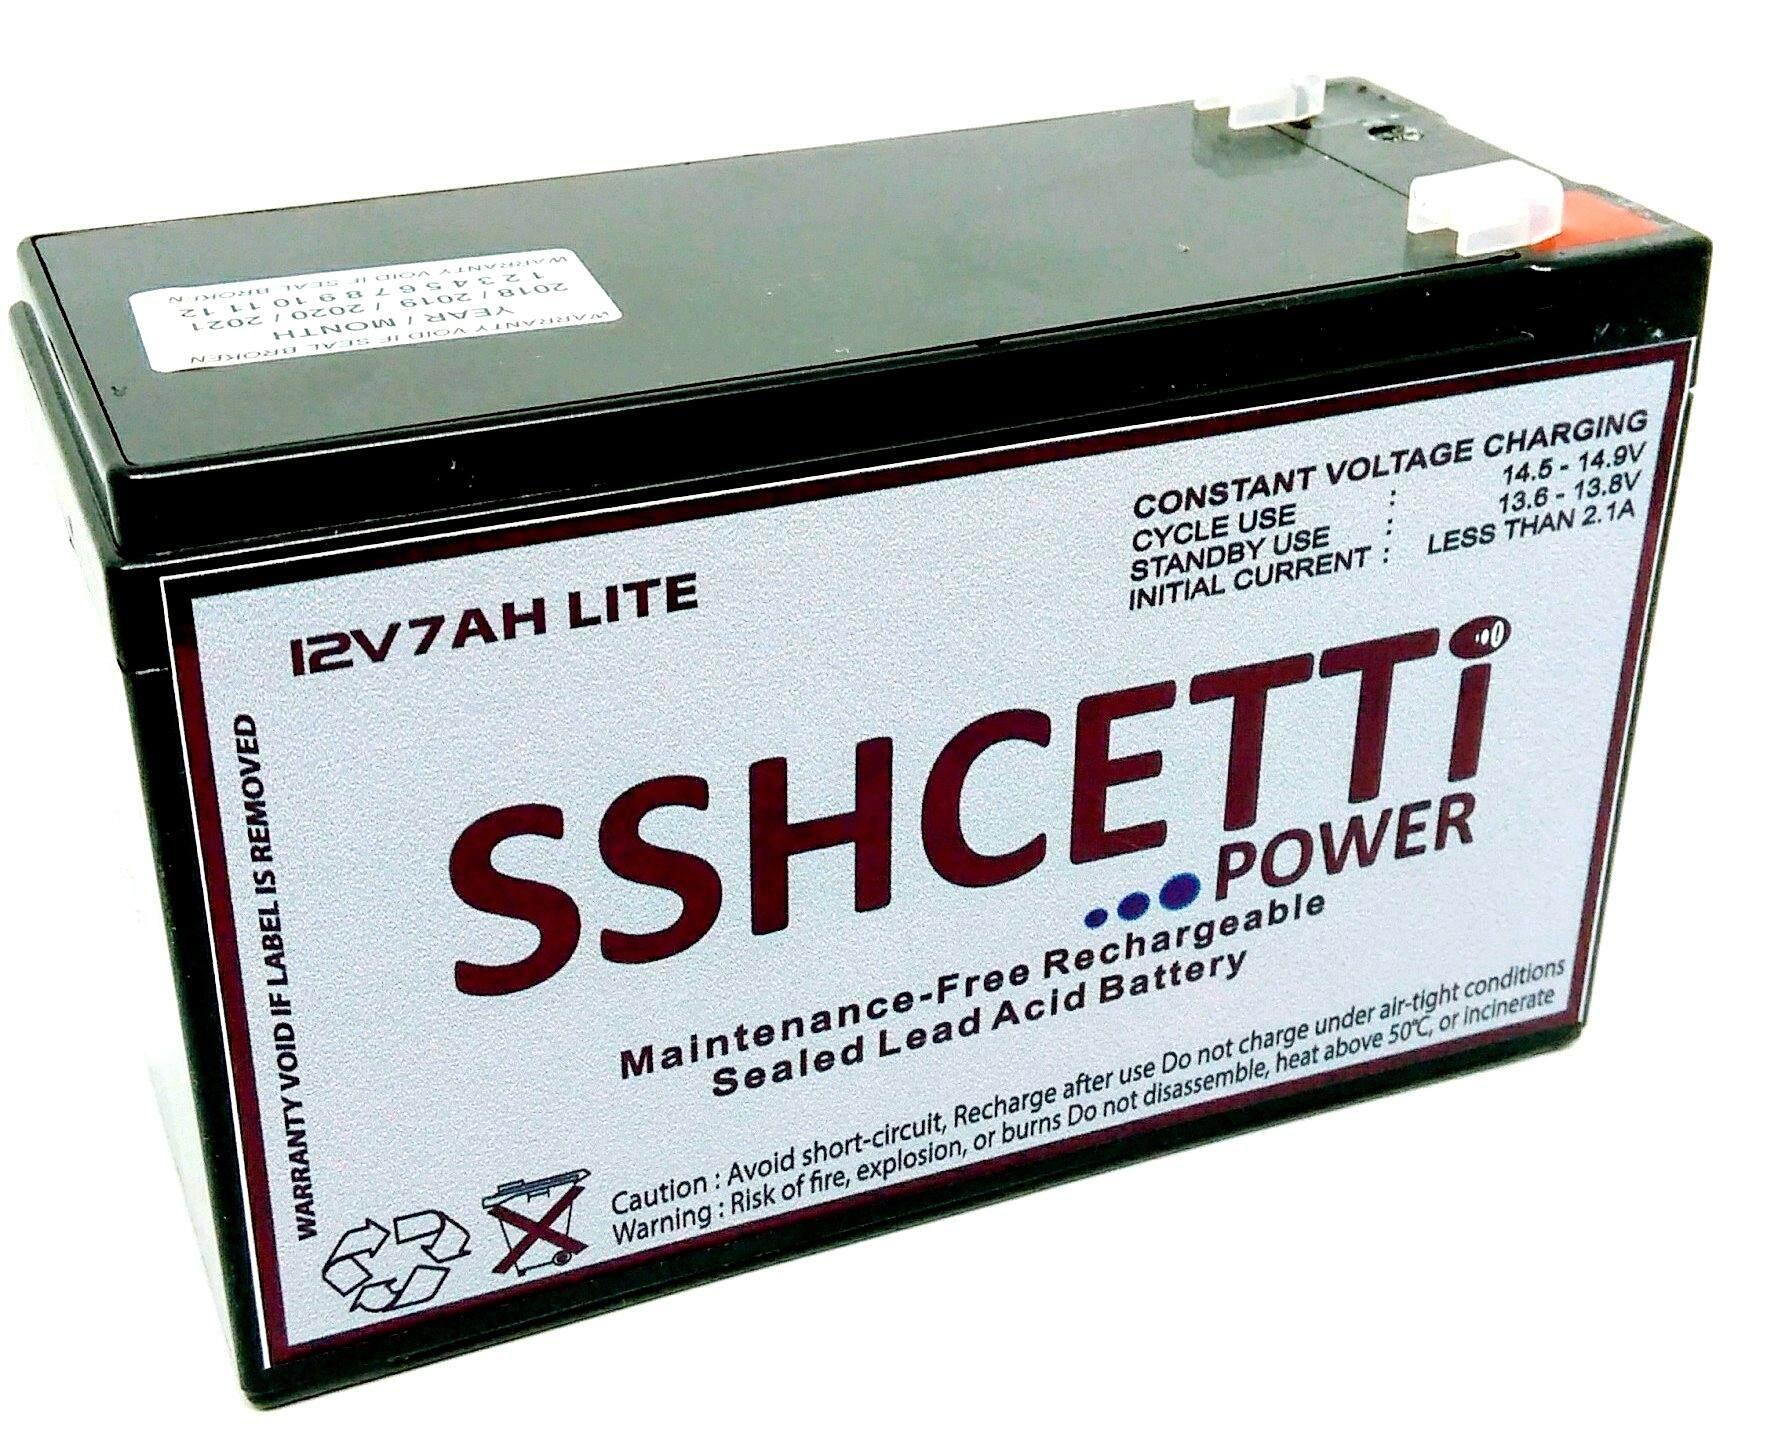 SSHCETTI 12V 7AH LITE Rechargeable Sealed Lead Acid Battery For Electric Scooter/ Toys car / Bike /Solar /Alarm /Autogate Malaysia